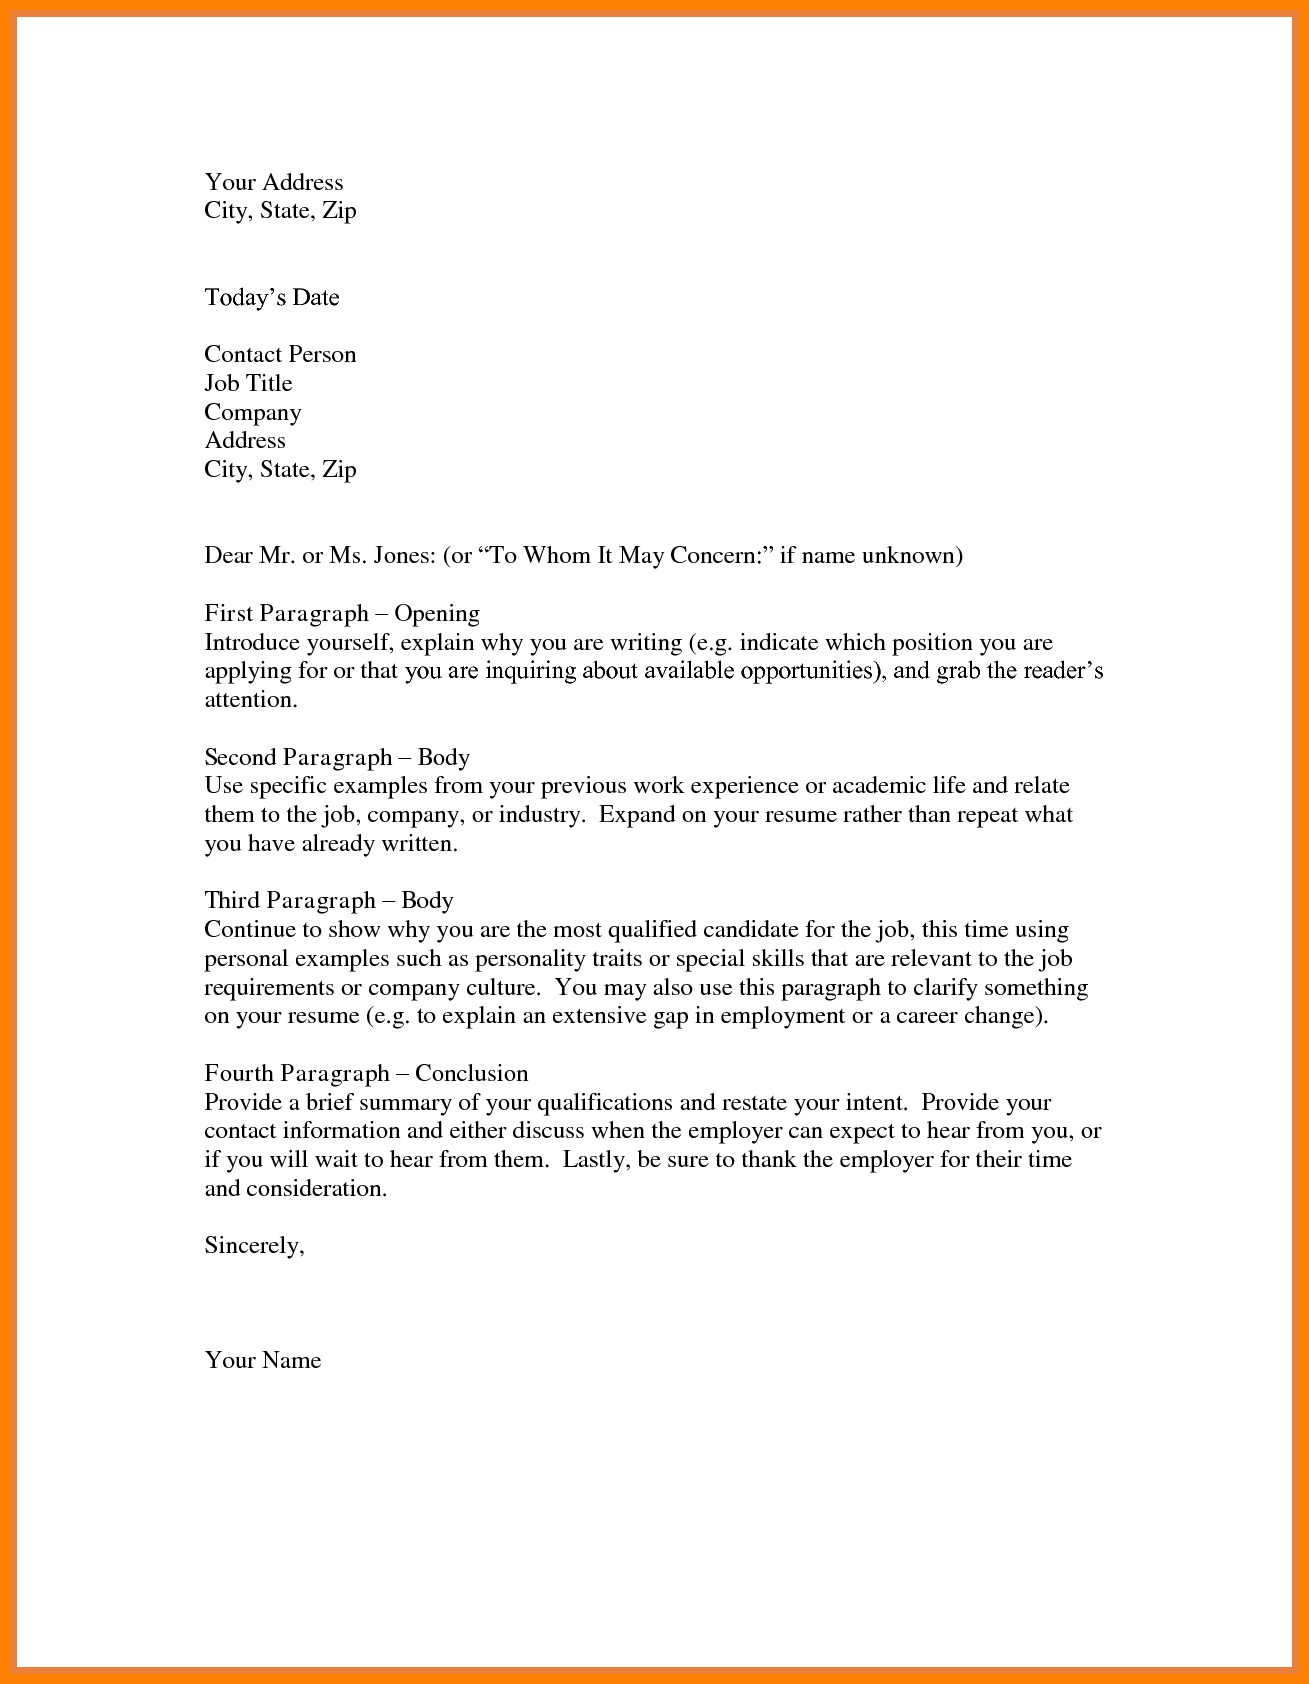 Letter Of Intent for Job Template - Letter Intent Job Template New Letter Intent for Employment